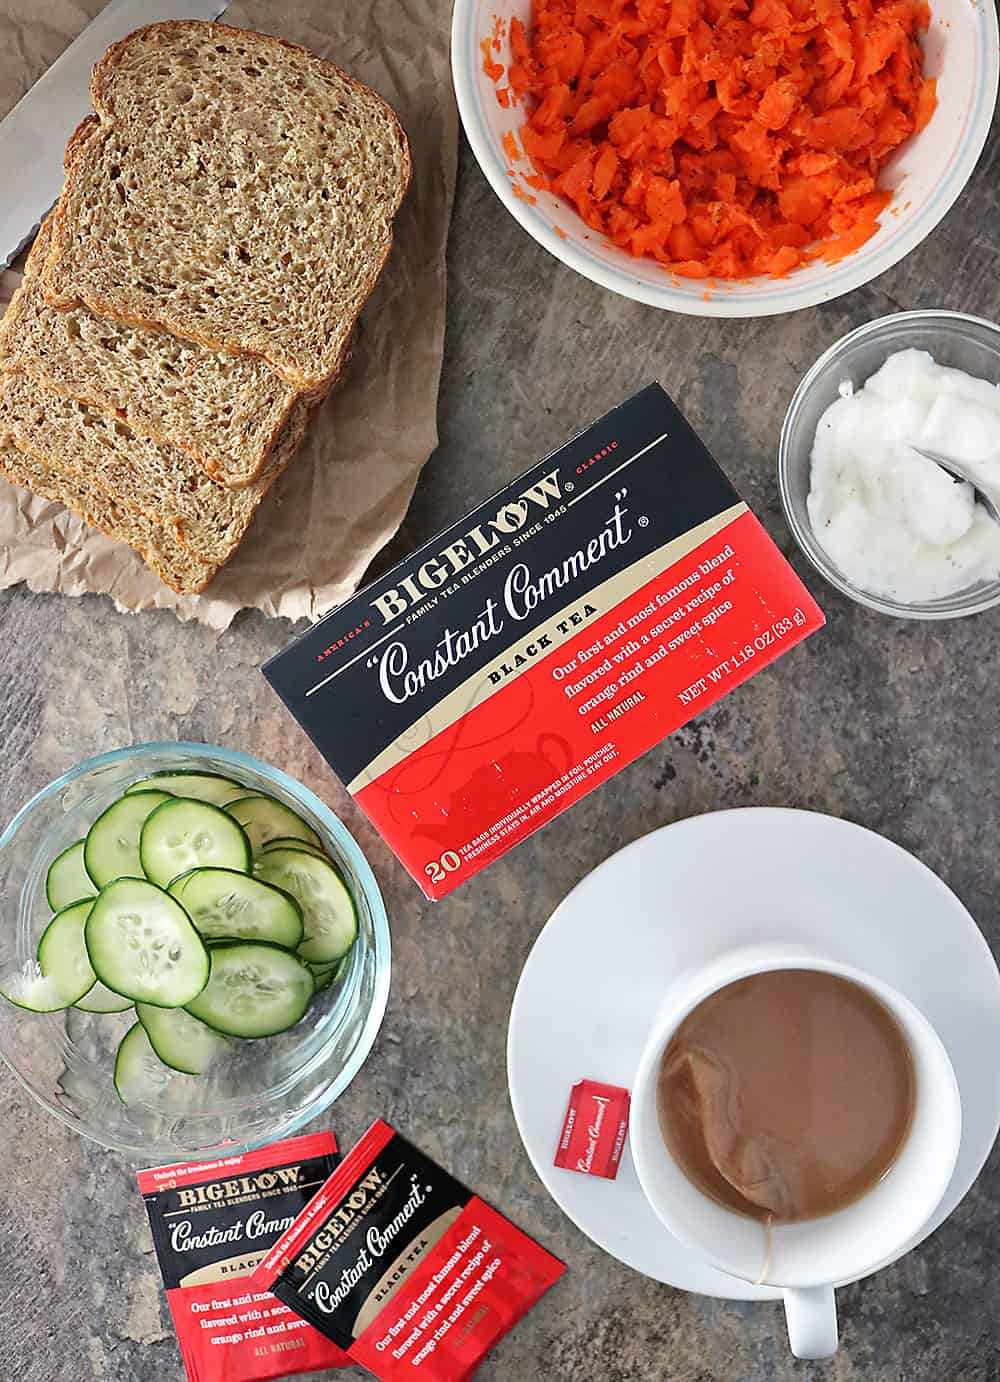 Photo of Ingredients For Making Carrot Cucumber Sandwiches for afternoon tea.